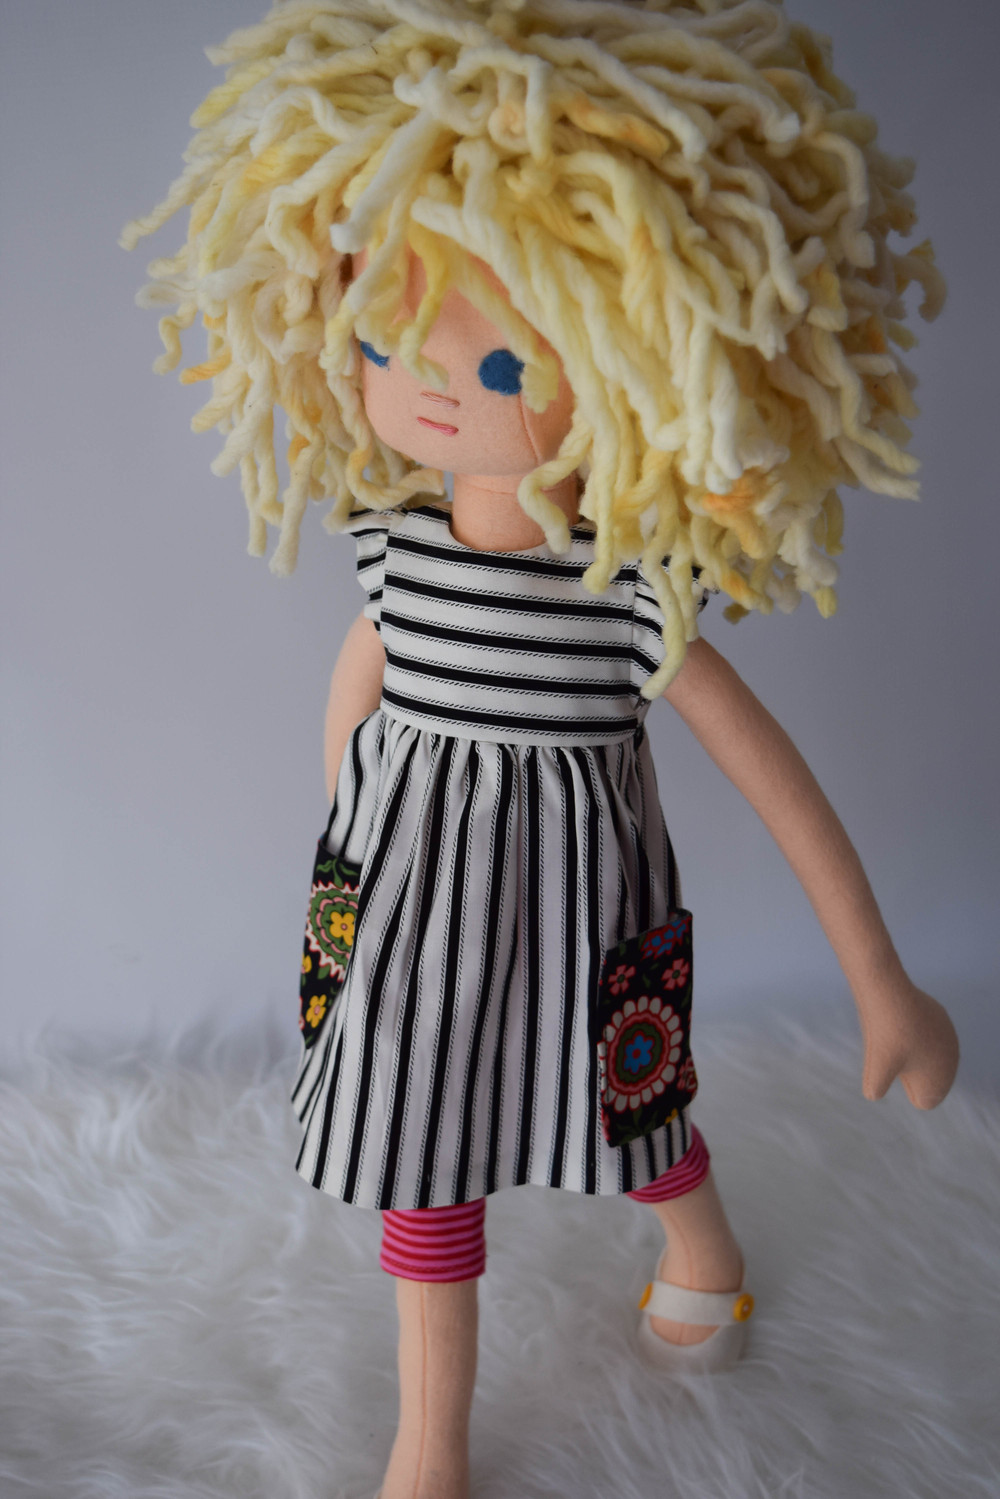 New Blond Phoebe doll